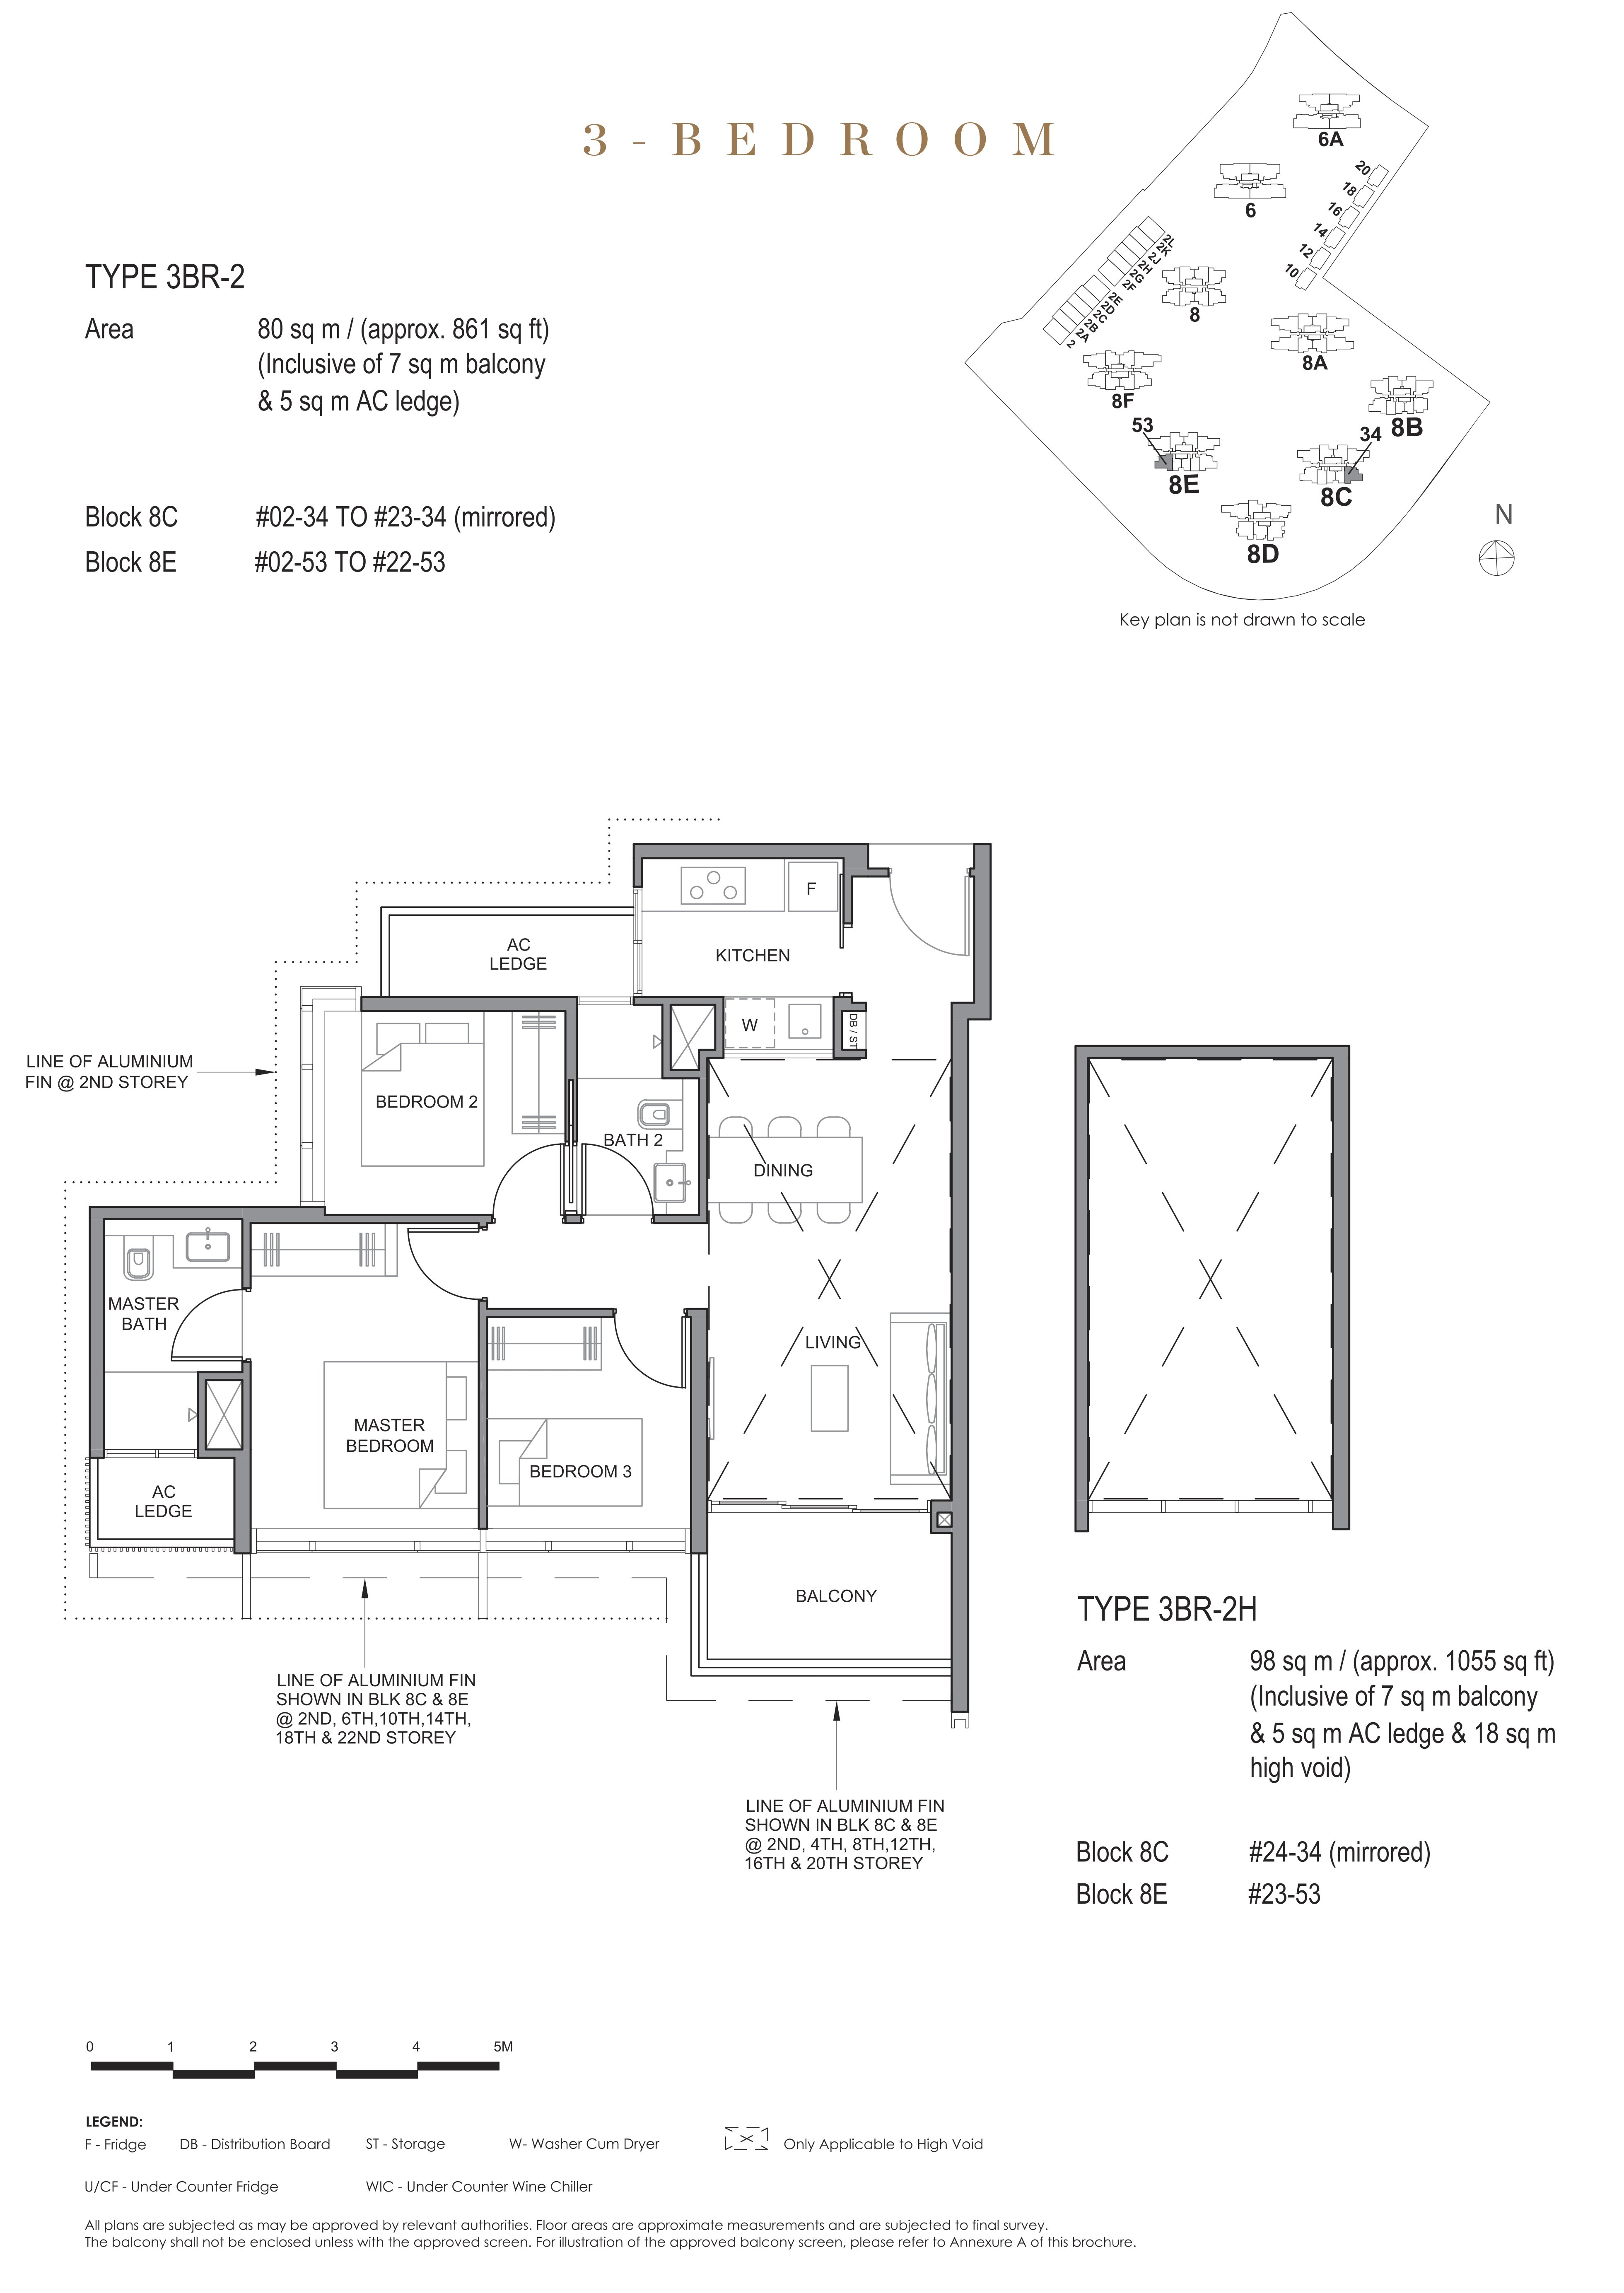 Parc Clematis 锦泰门第 contemporary 3 bedroom 3卧房 3 BR-2